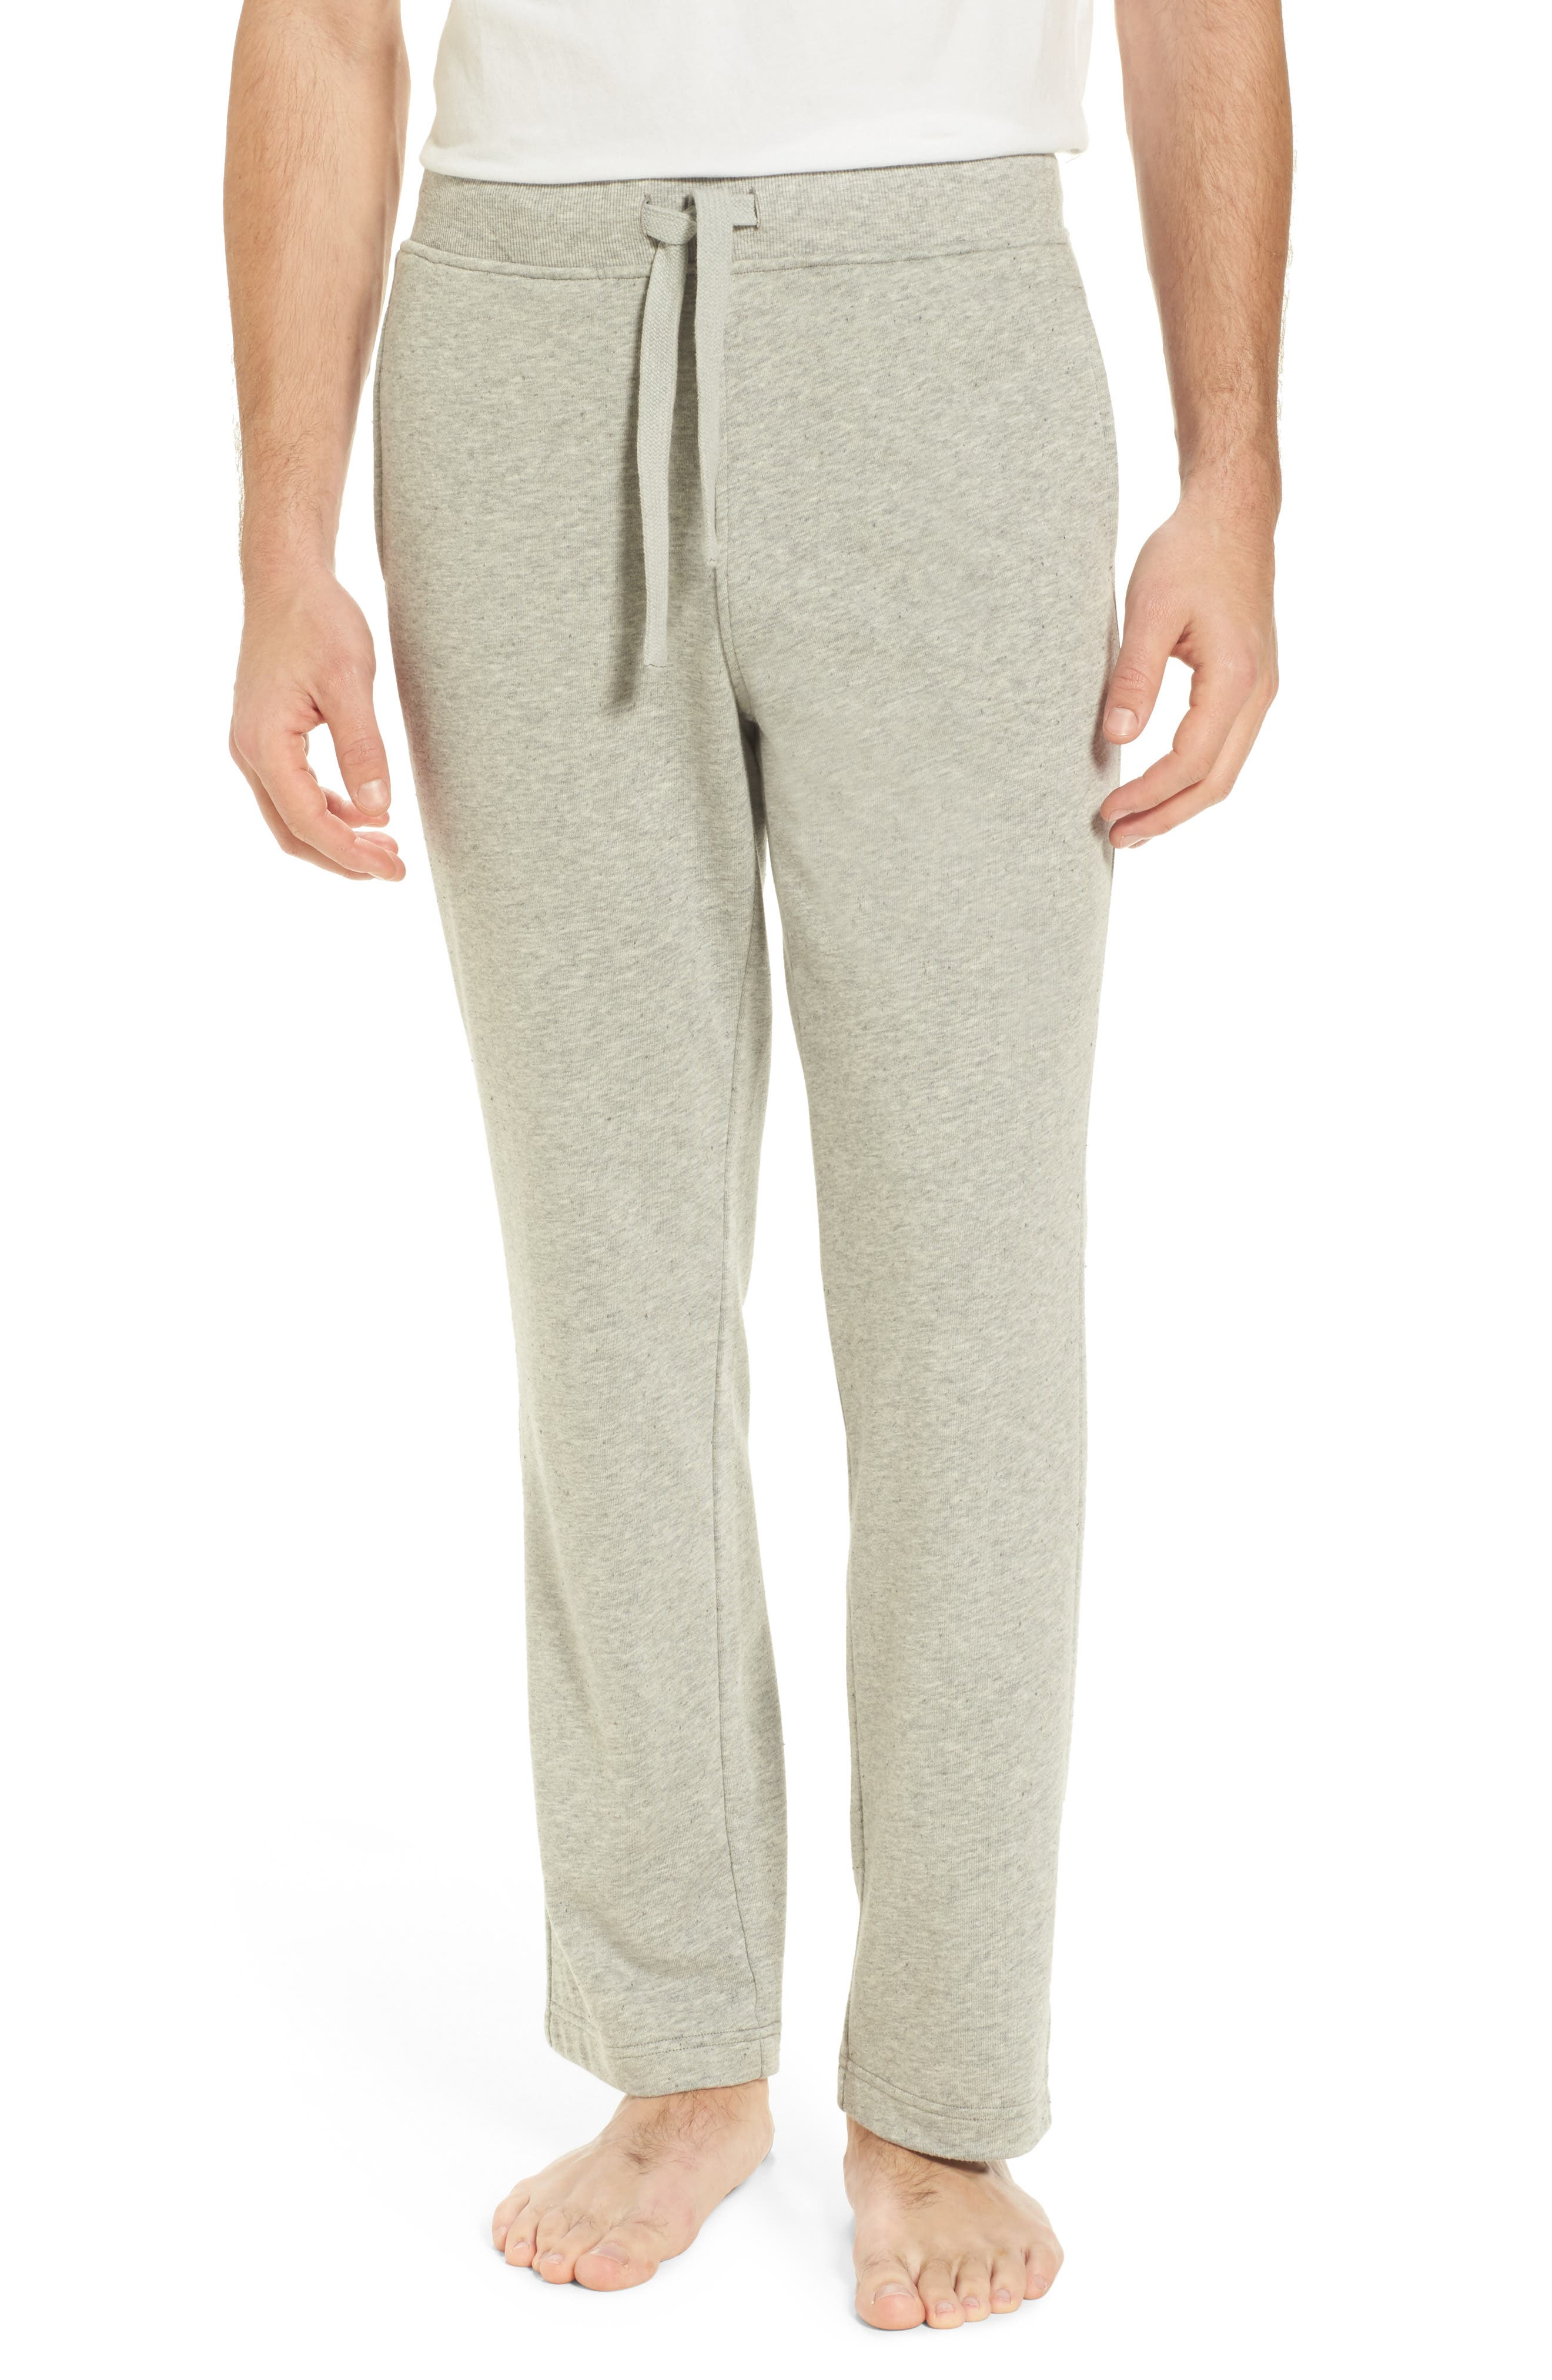 Wyatt Terry Cotton Blend Lounge Pants,                         Main,                         color, Seal